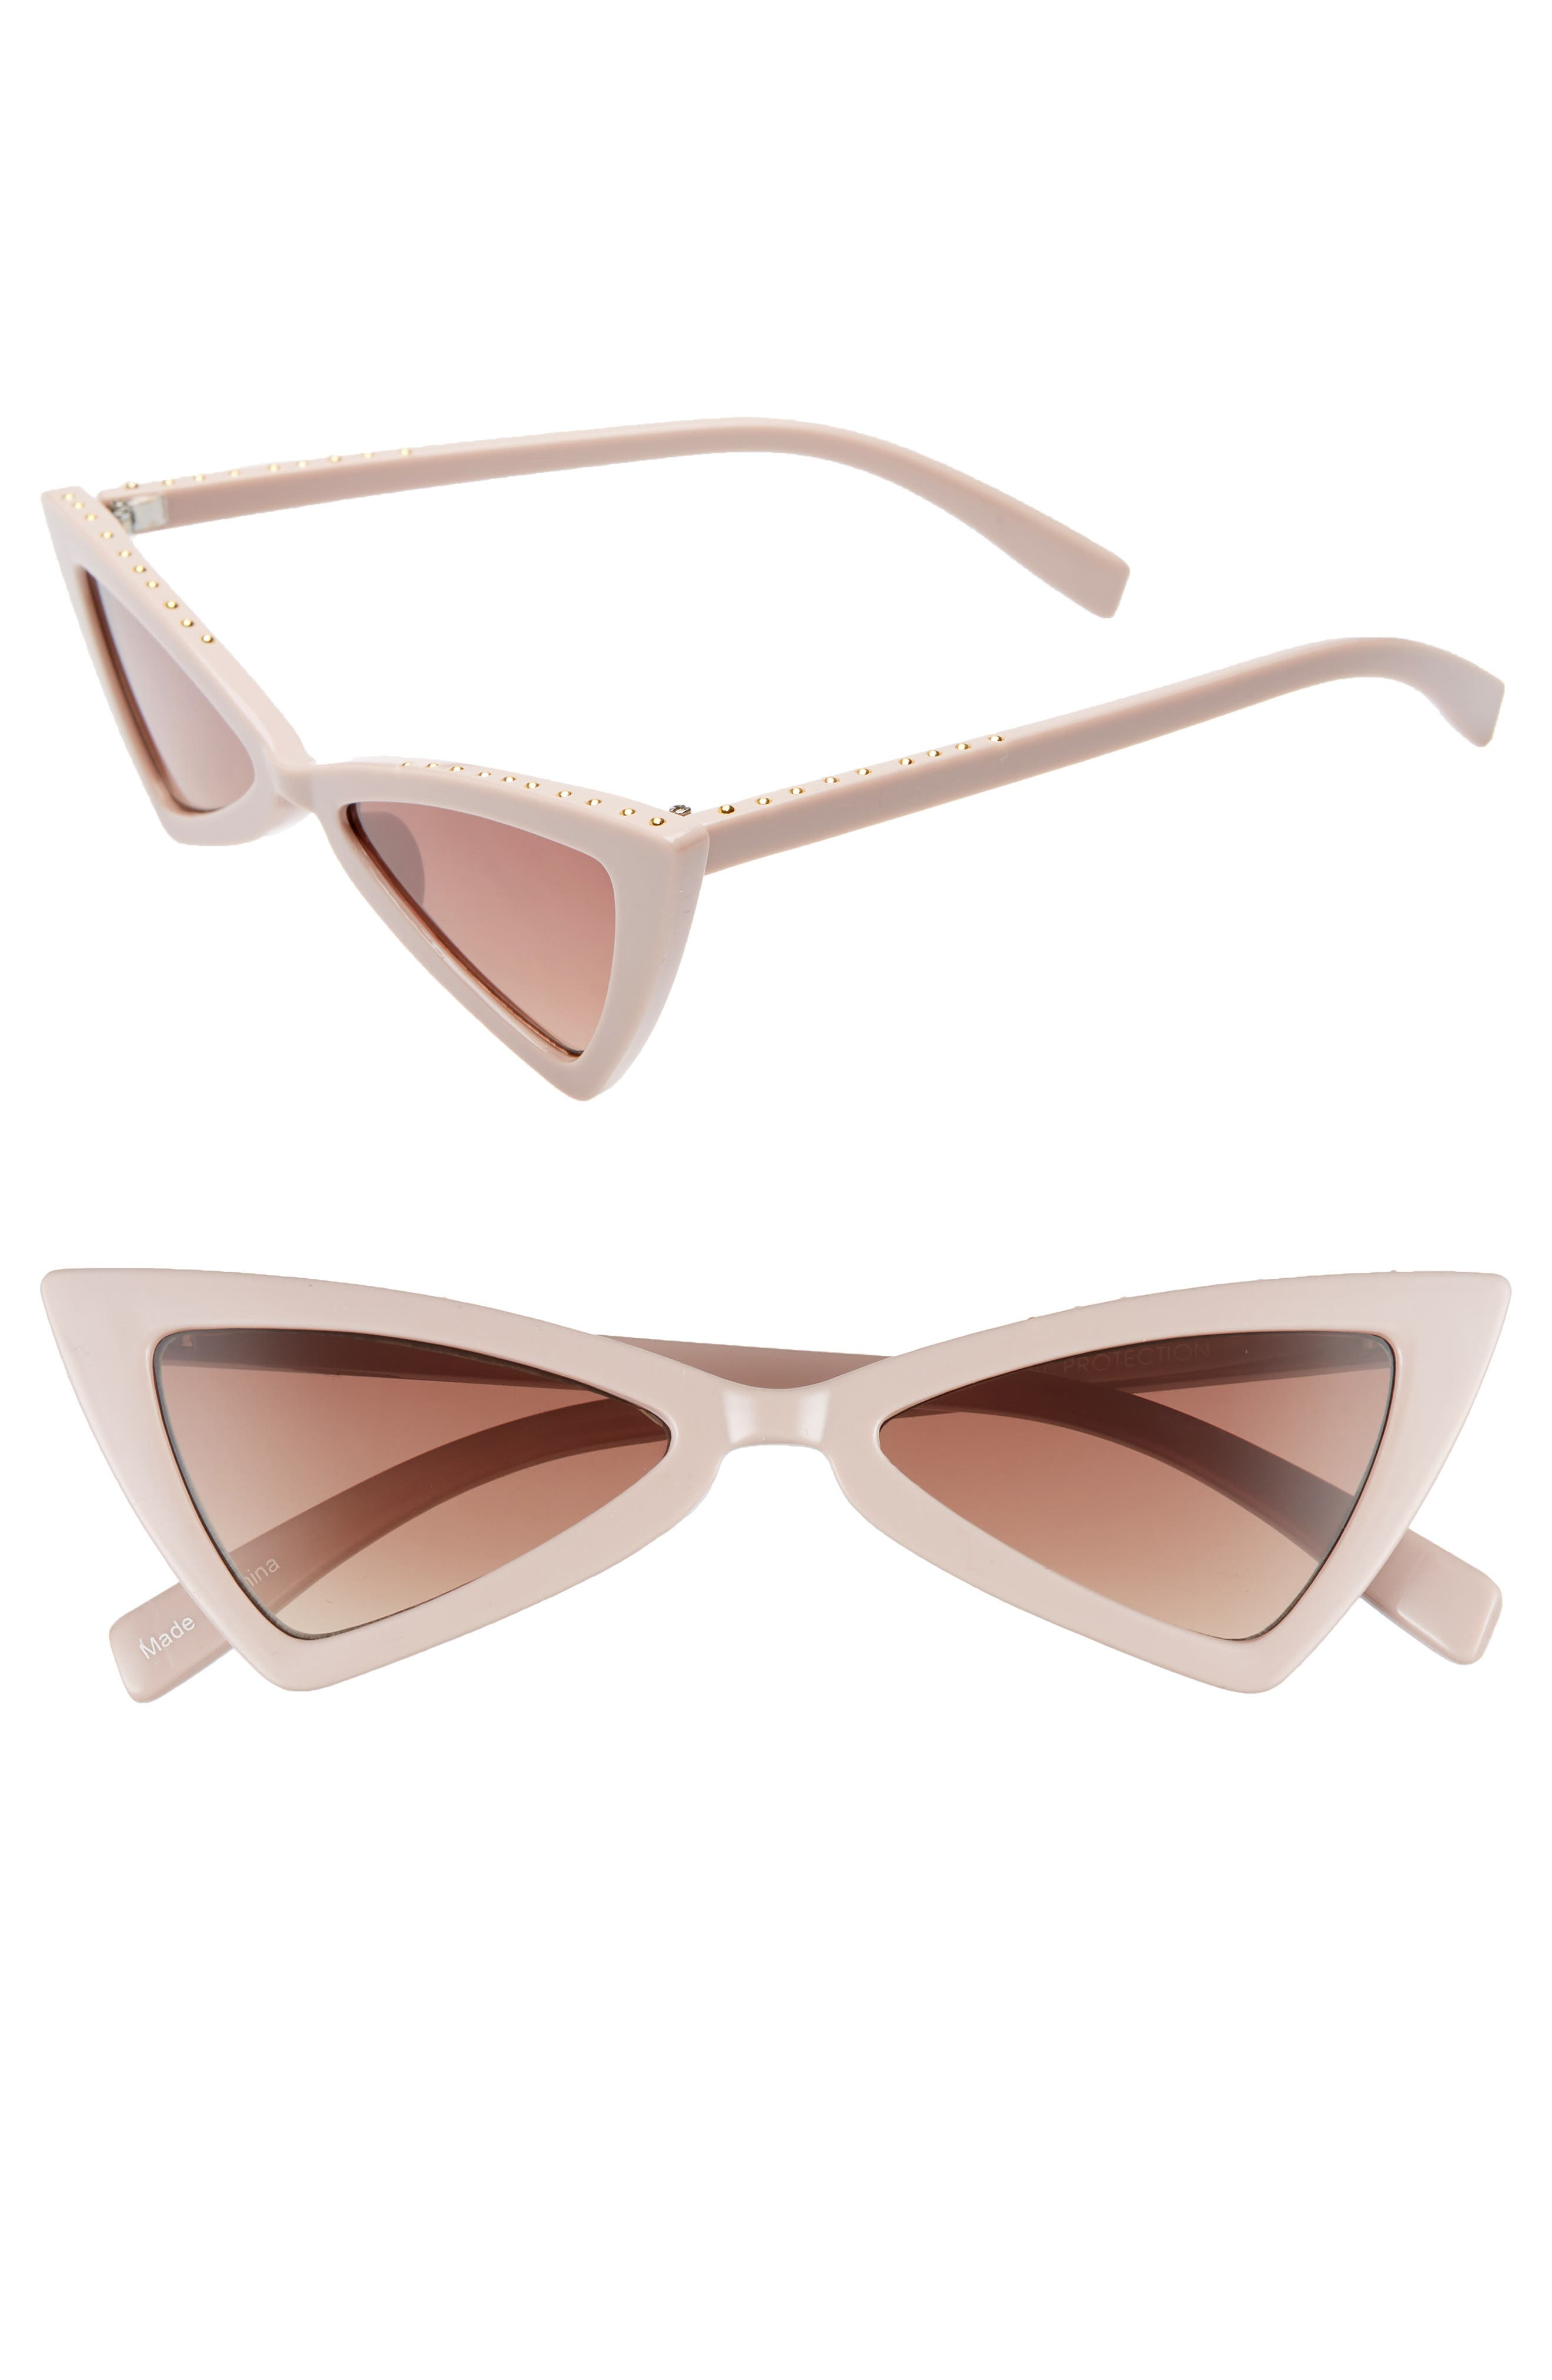 LEITH, 52mm Stud Cat Eye Sunglasses, Main thumbnail 1, color, TAUPE/ GOLD